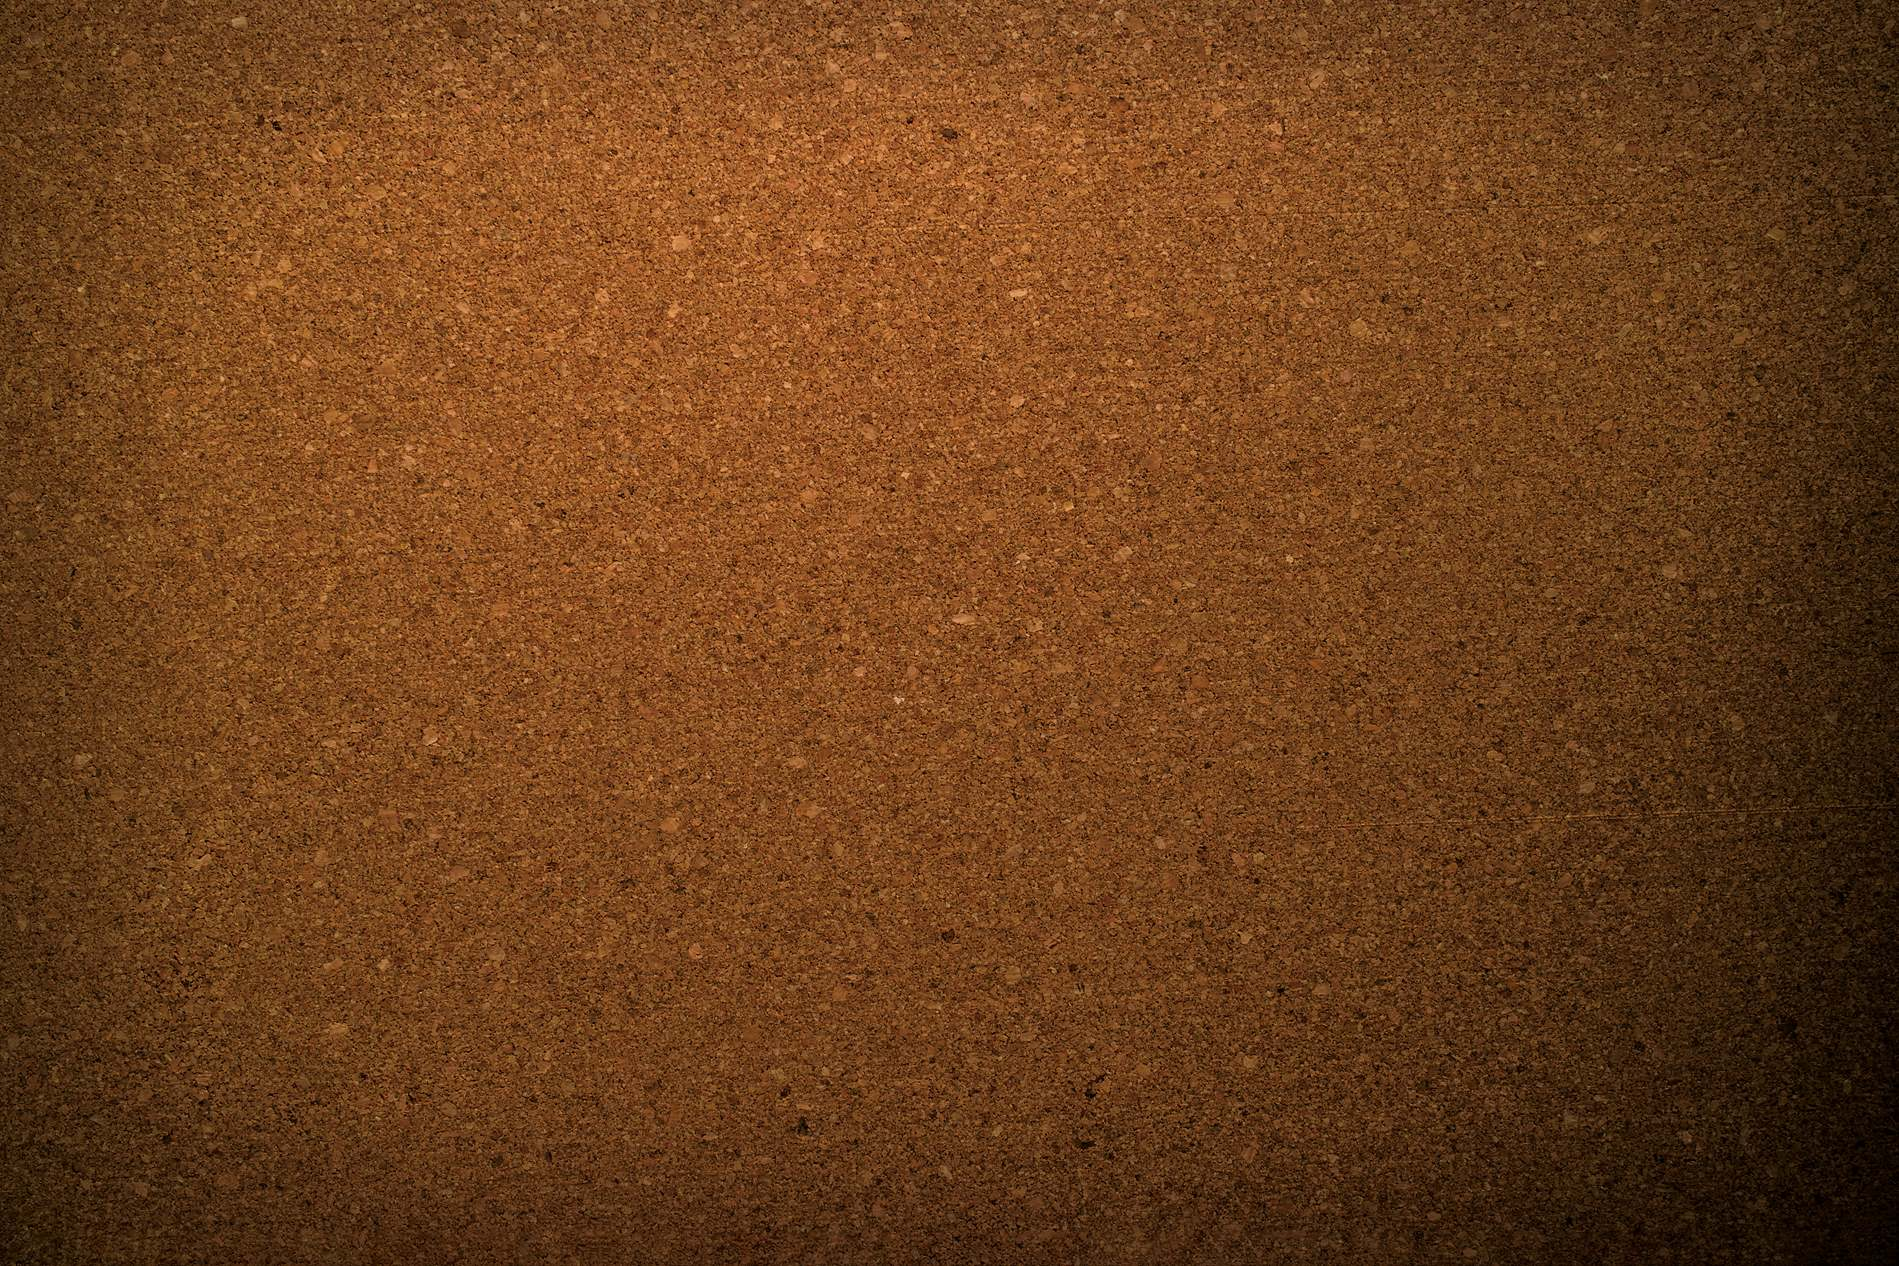 Cork Board Background Texture   PhotoHDX 1500x1000